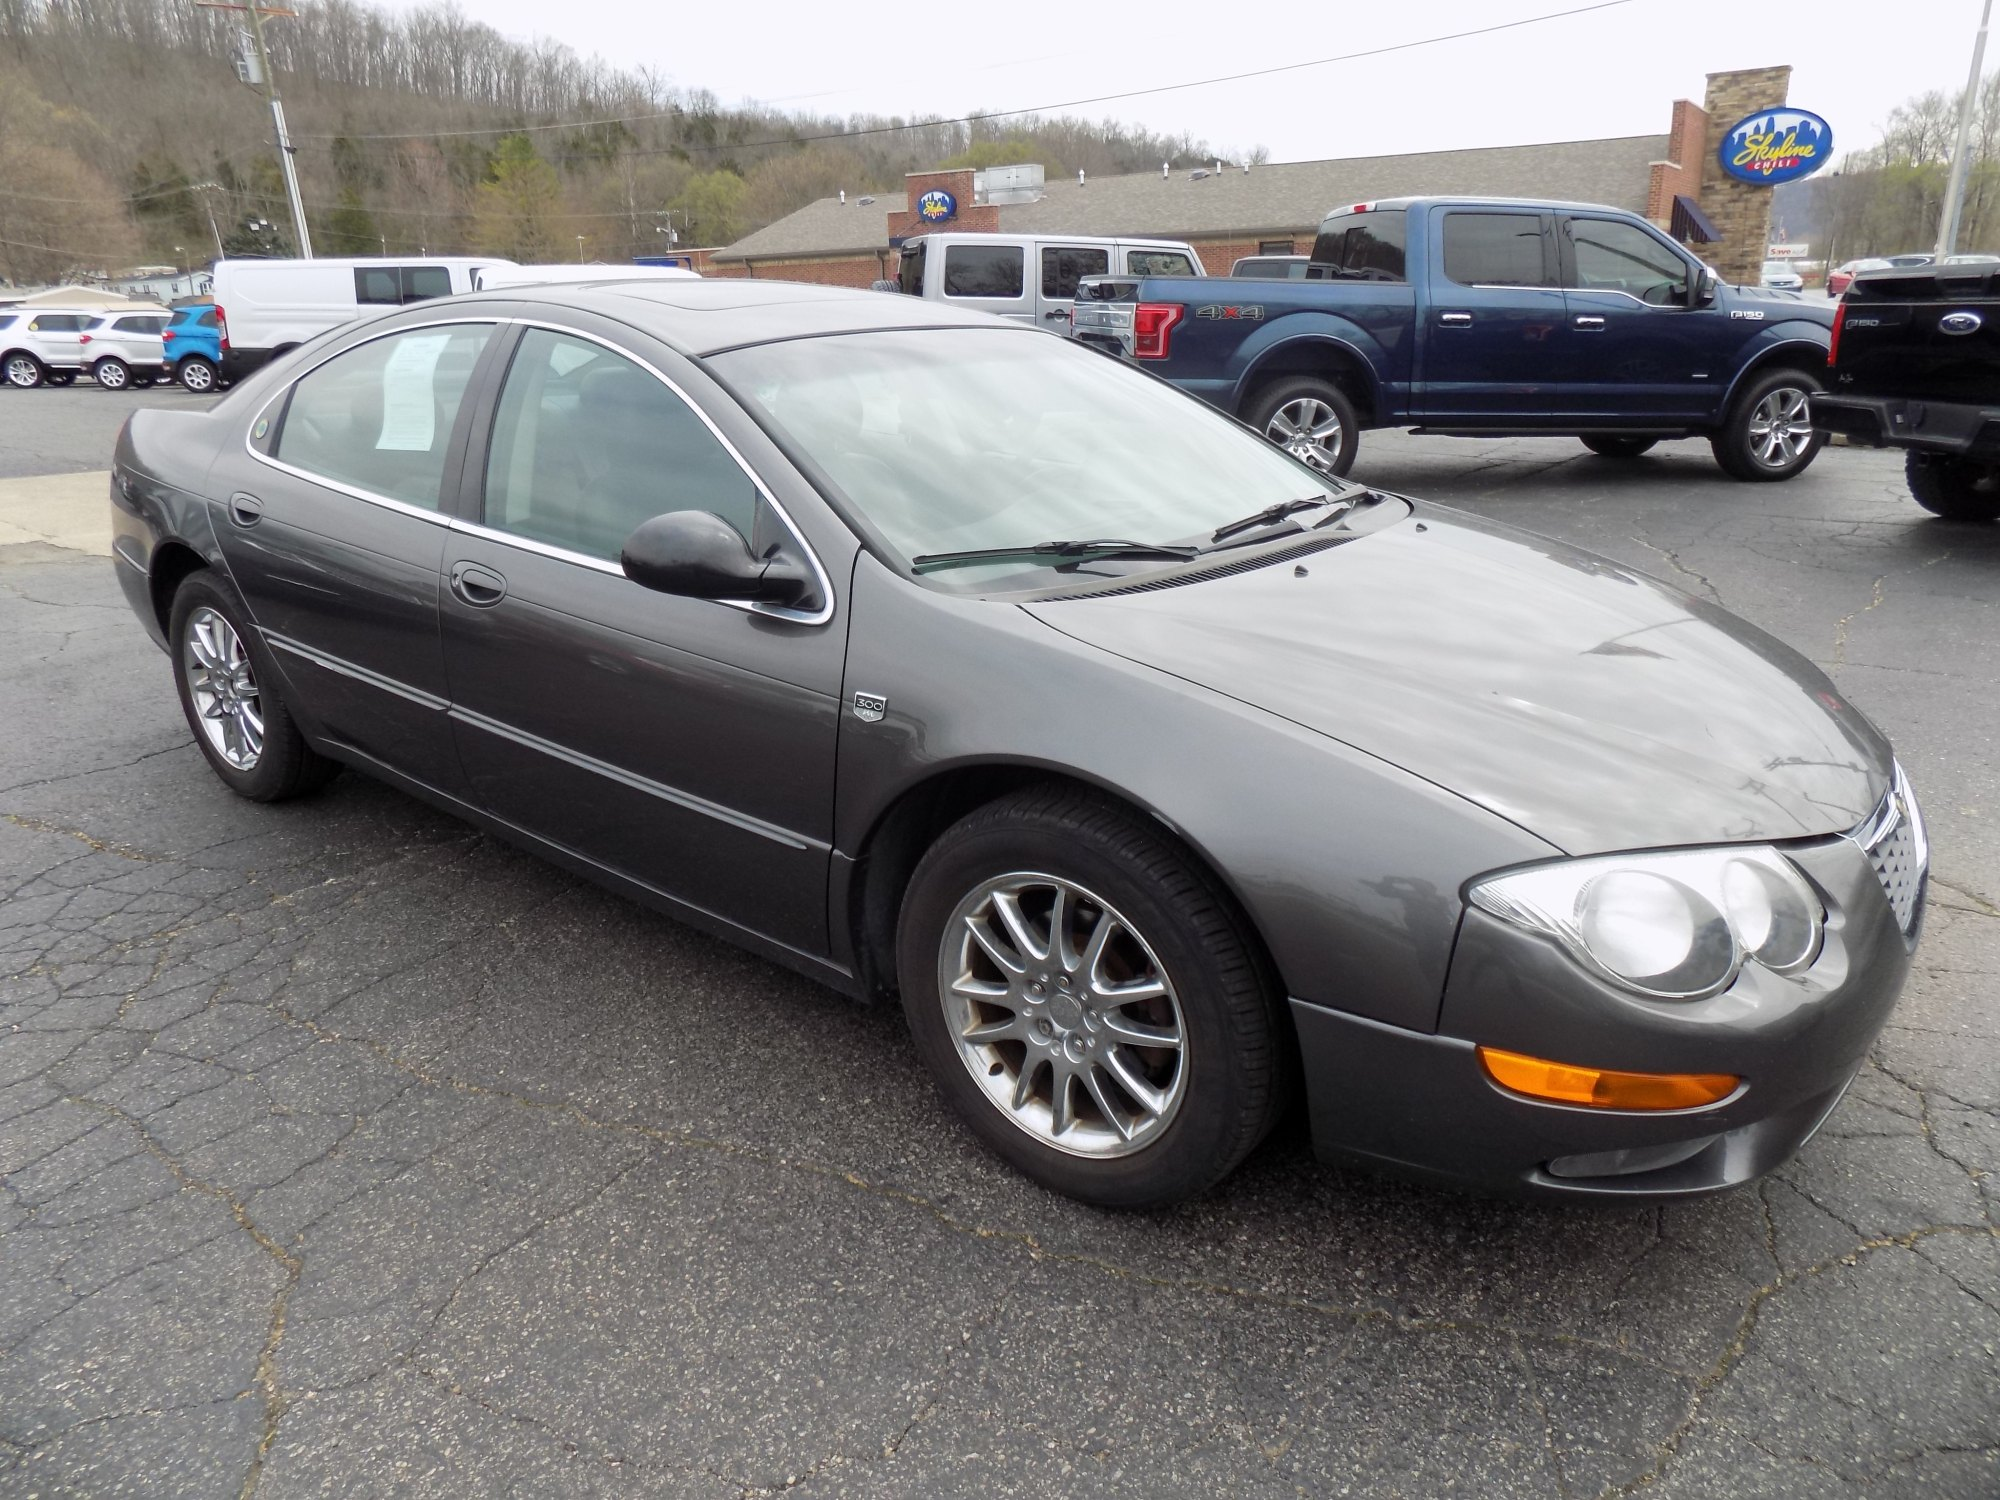 hight resolution of used 2002 chrysler 300m for sale brookville in vin 2c3he66g52h259842